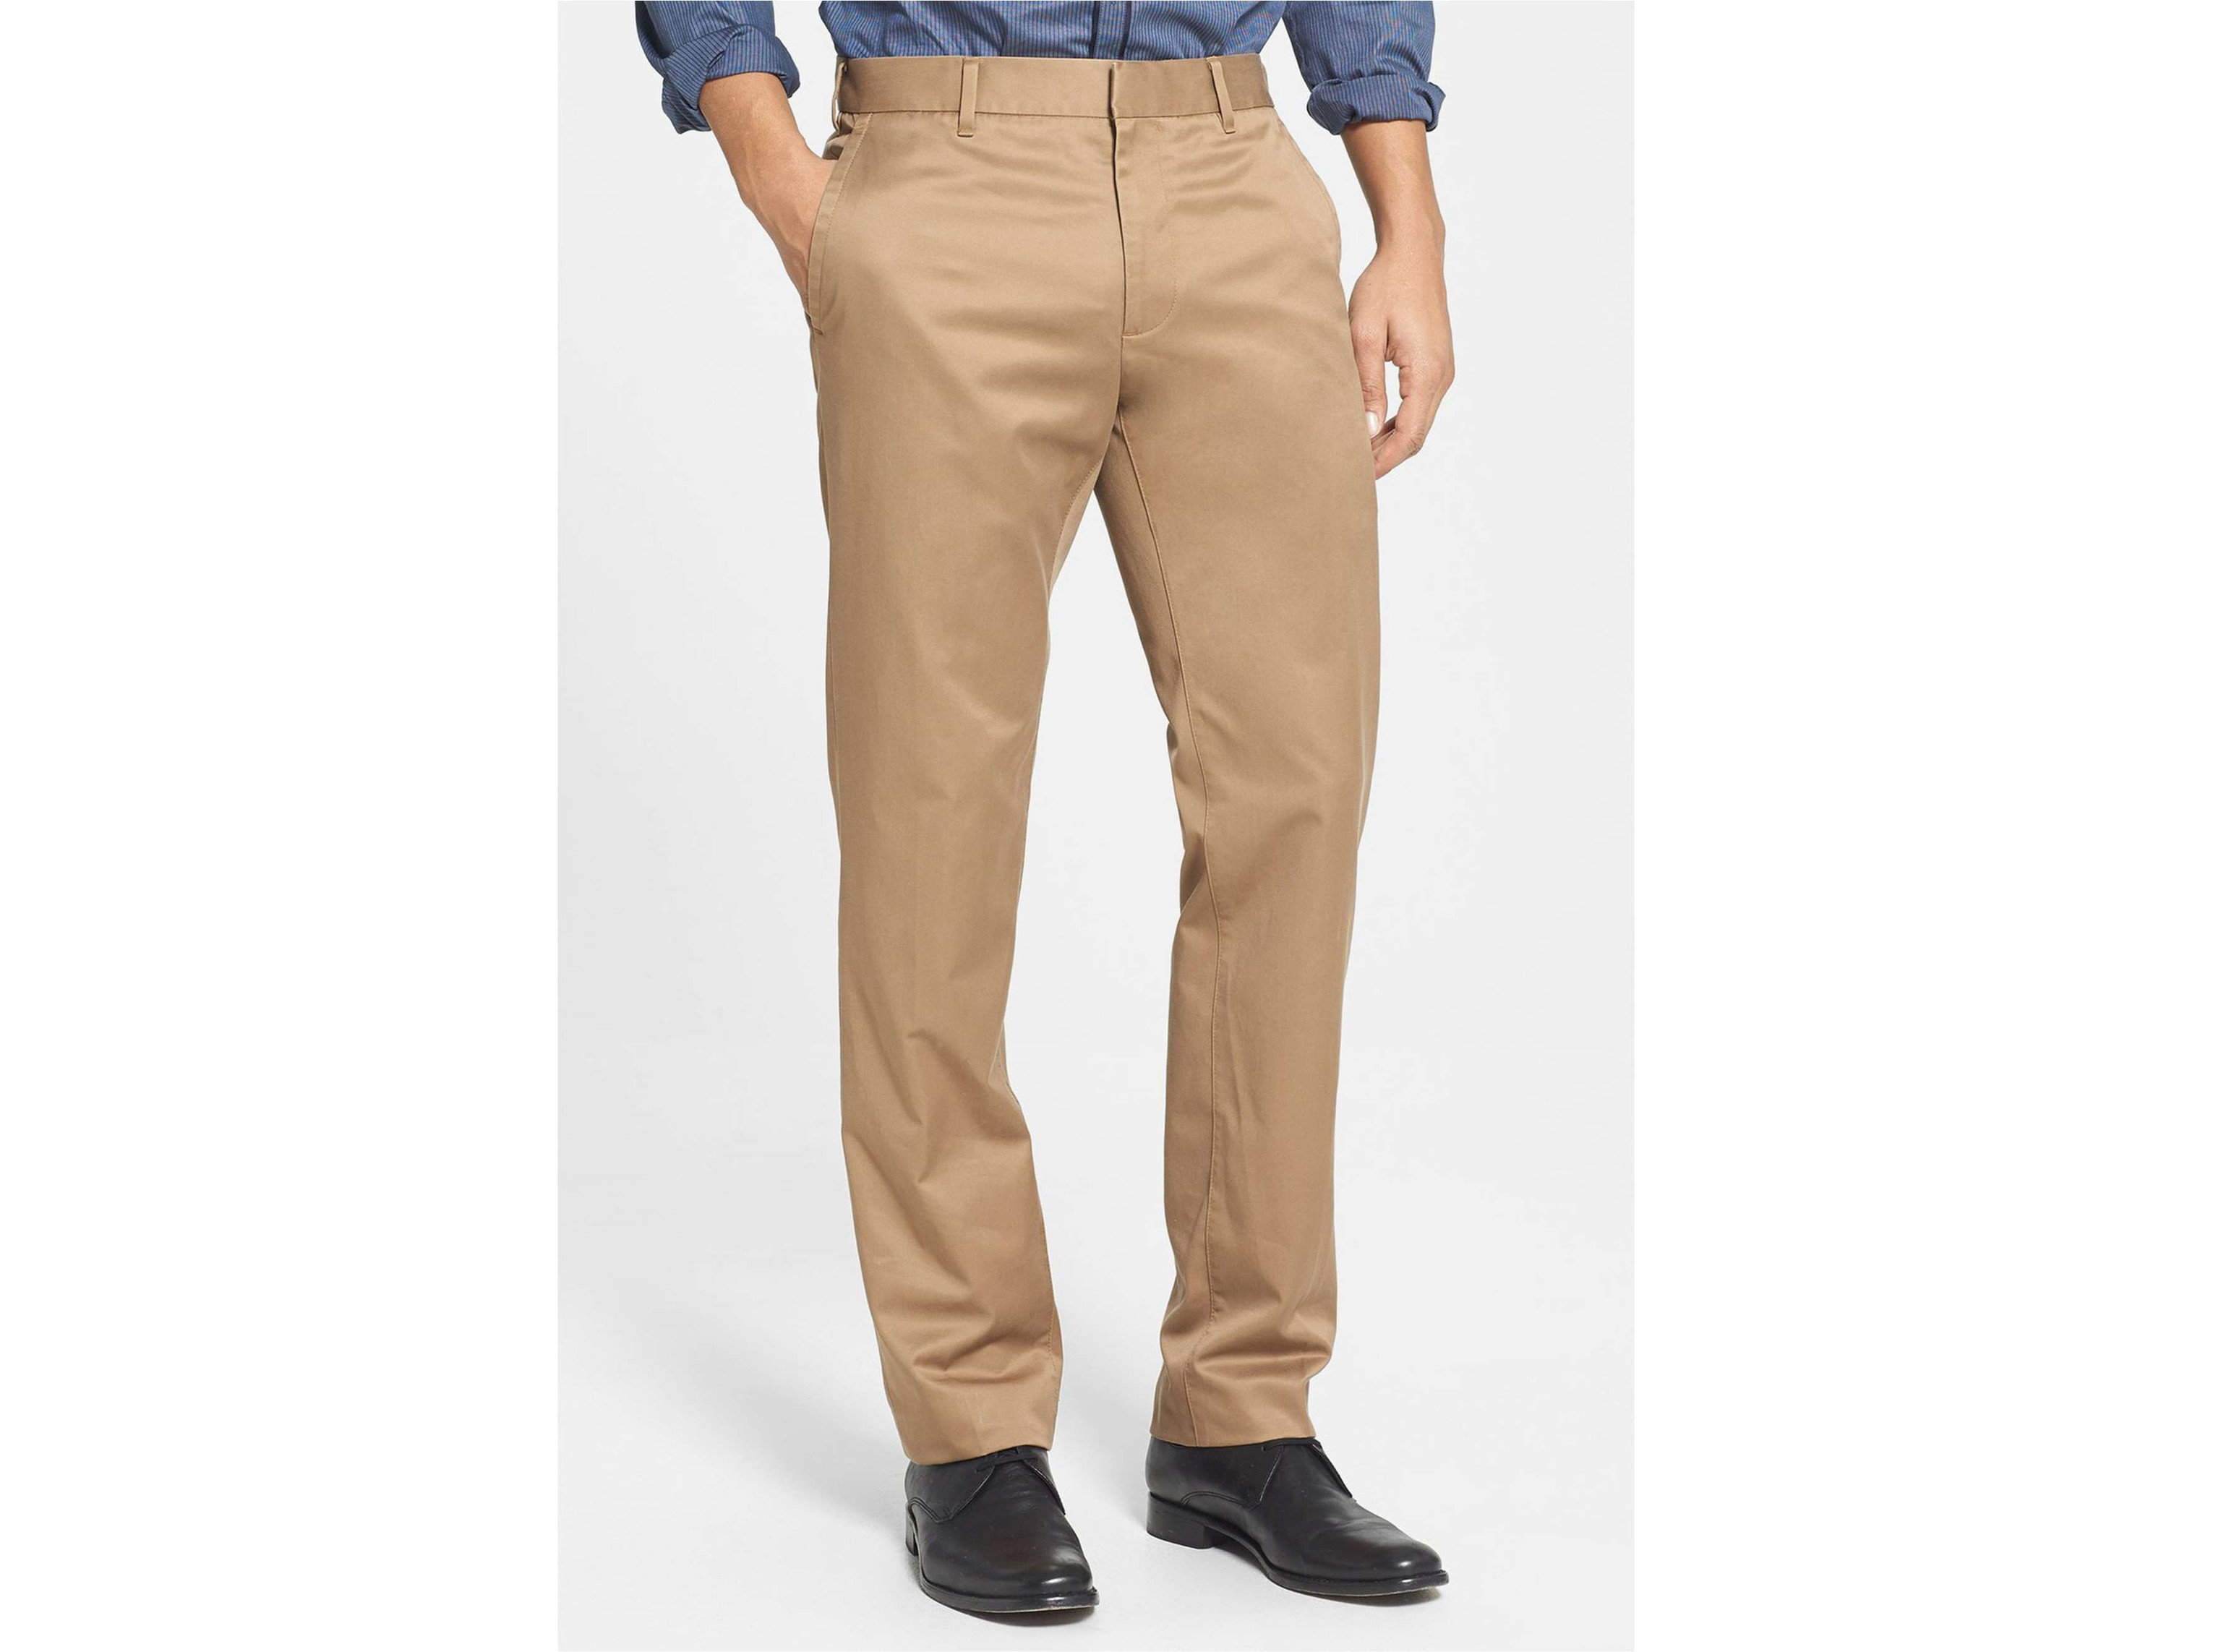 Style + Design Travel Shop clothing person khaki trouser wearing standing posing jeans trousers waist suit beige pocket active pants male